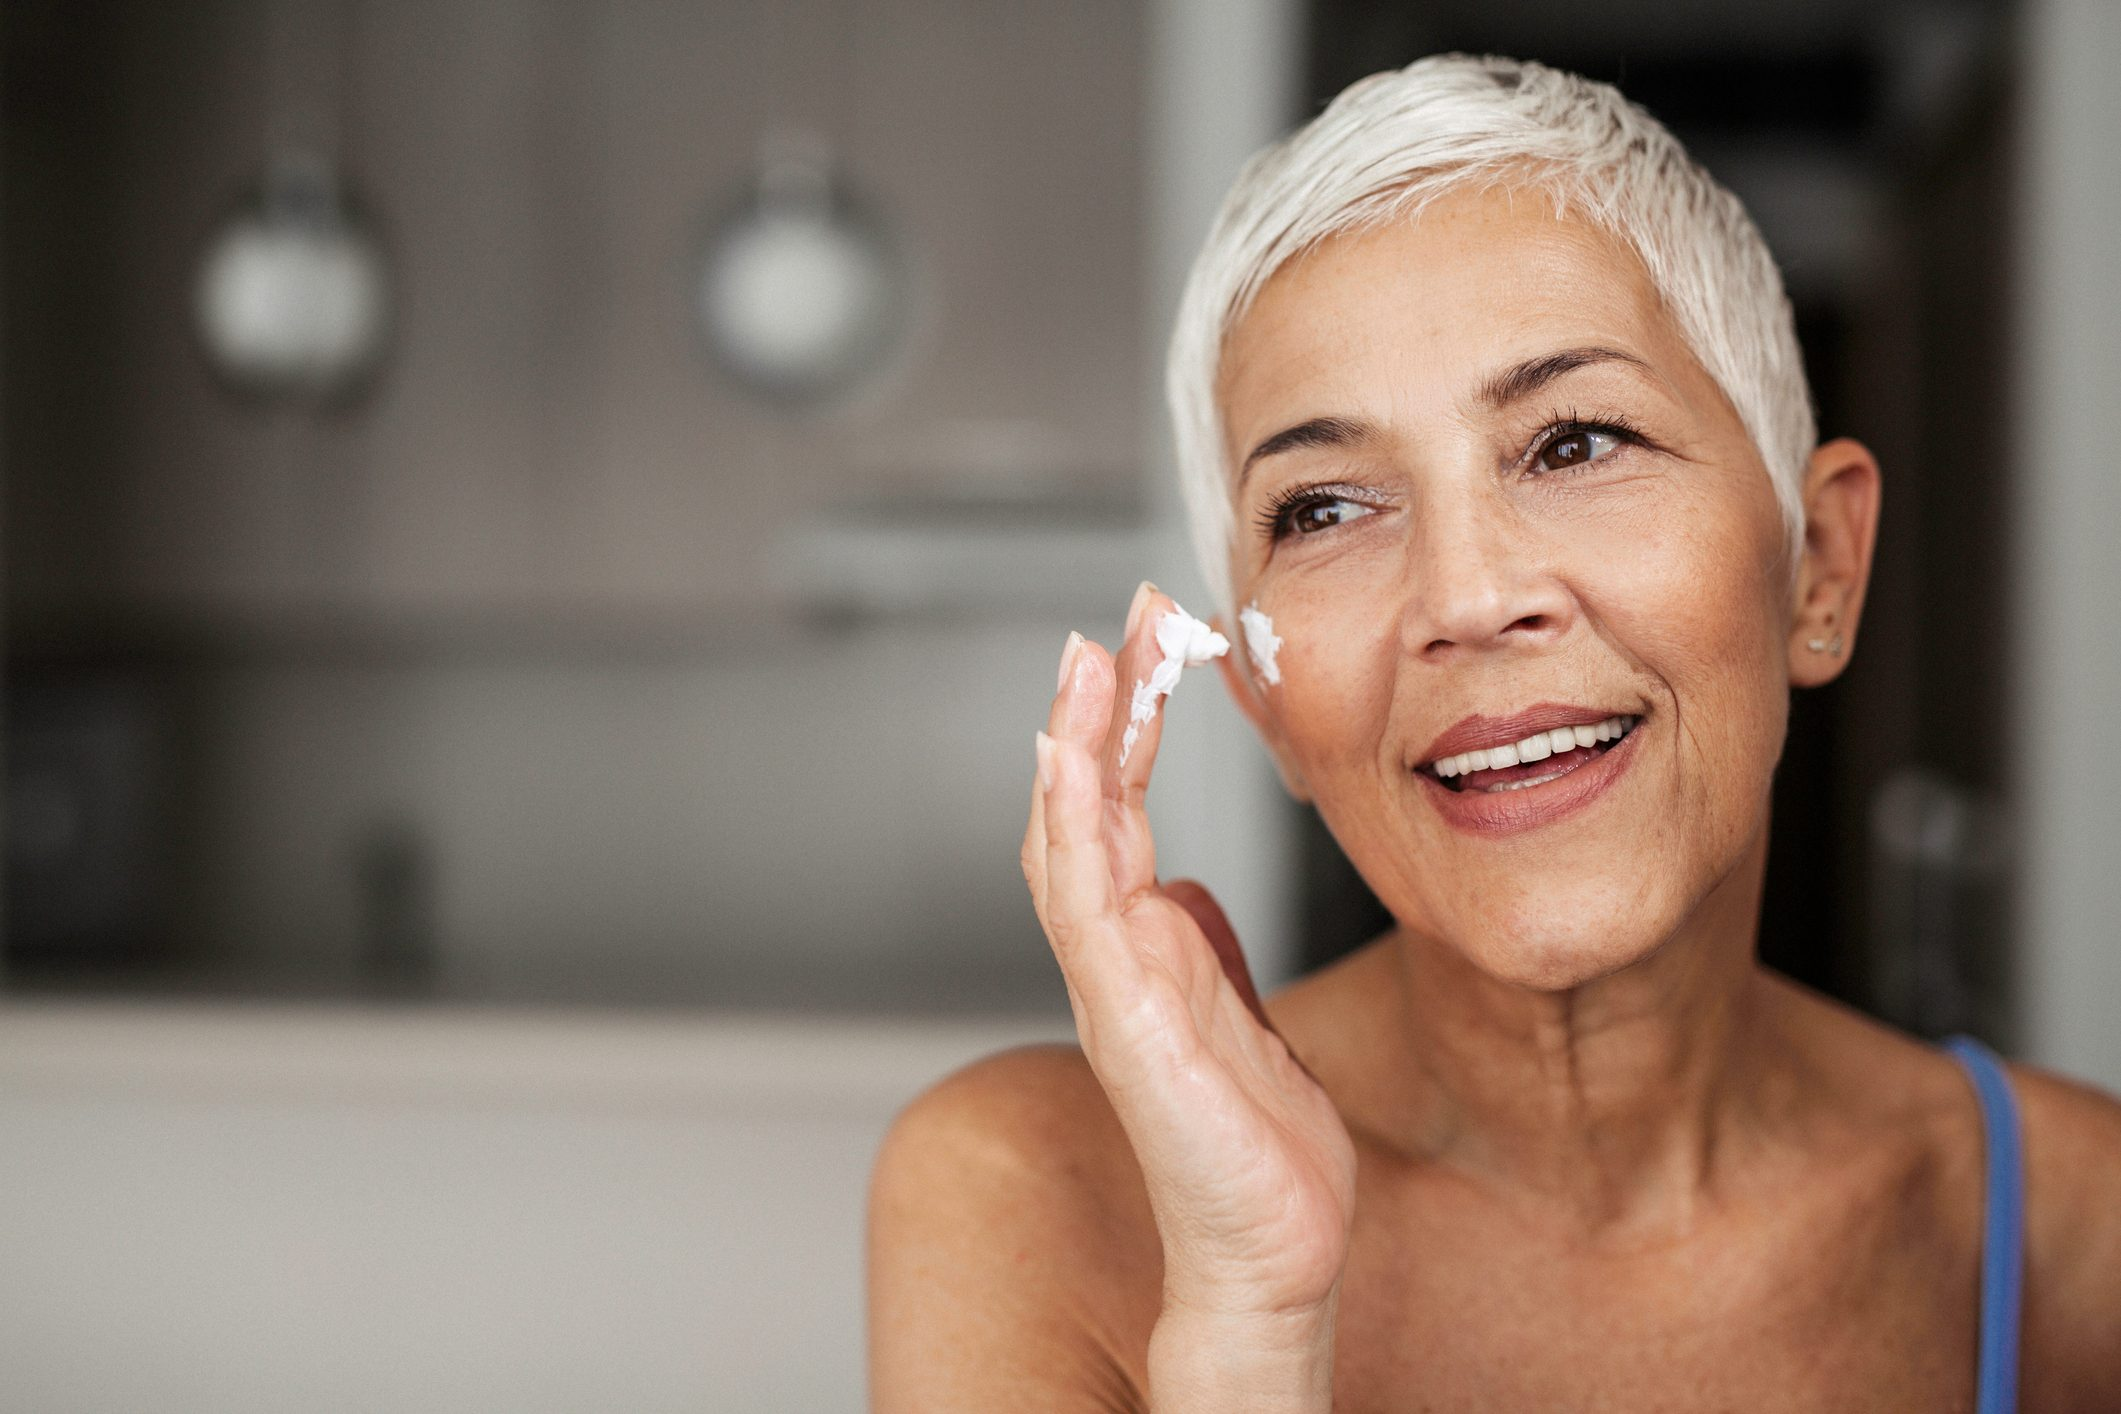 senior woman applying sunscreen to her face